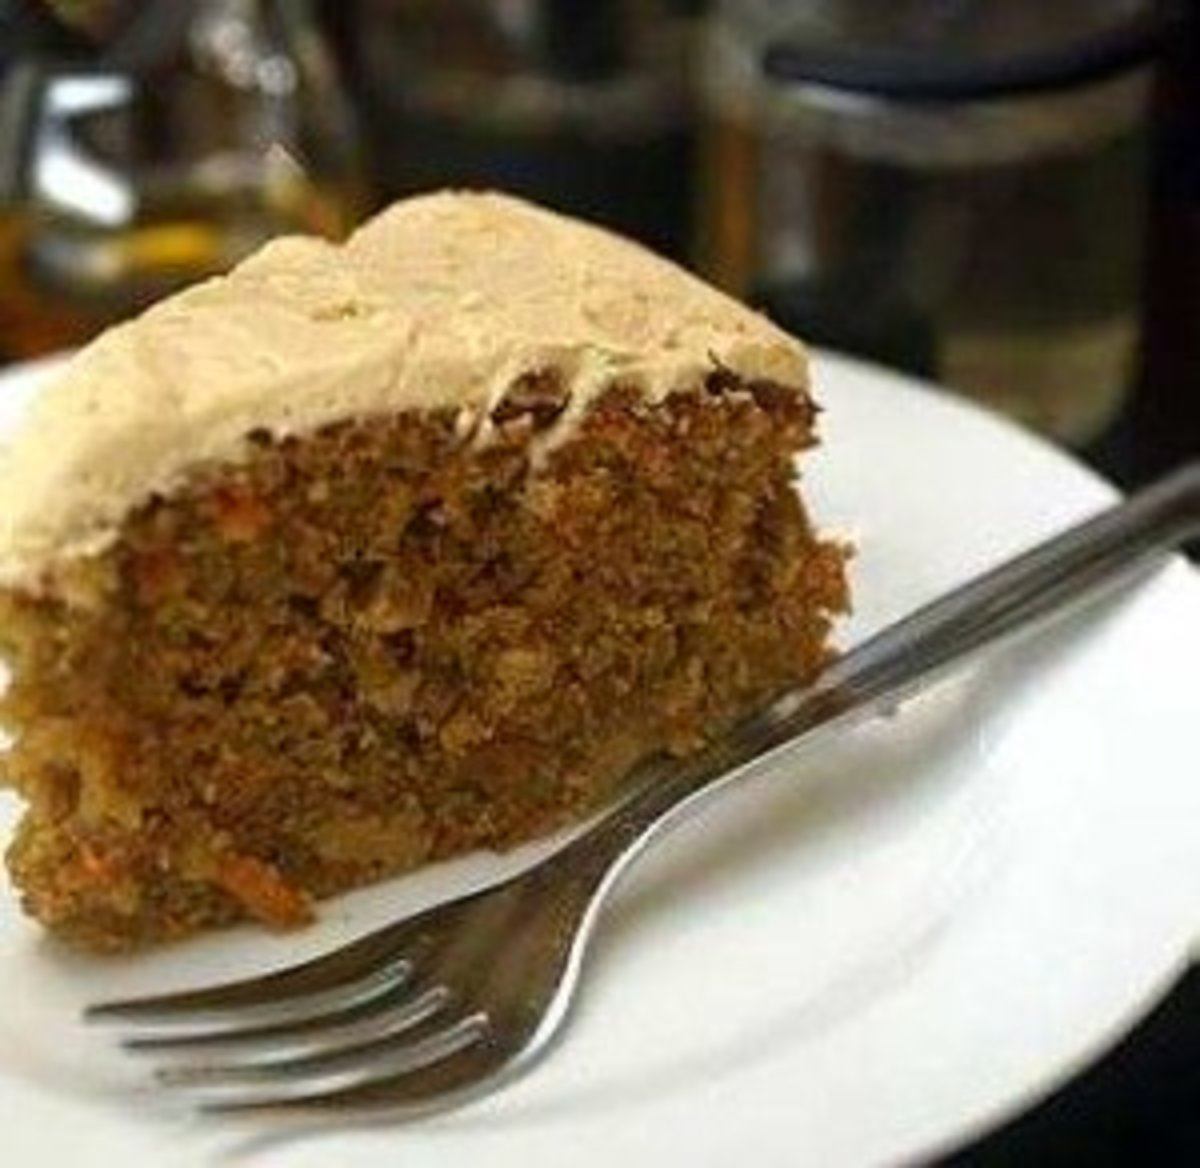 This is the best Carrot Cake I have ever tasted!